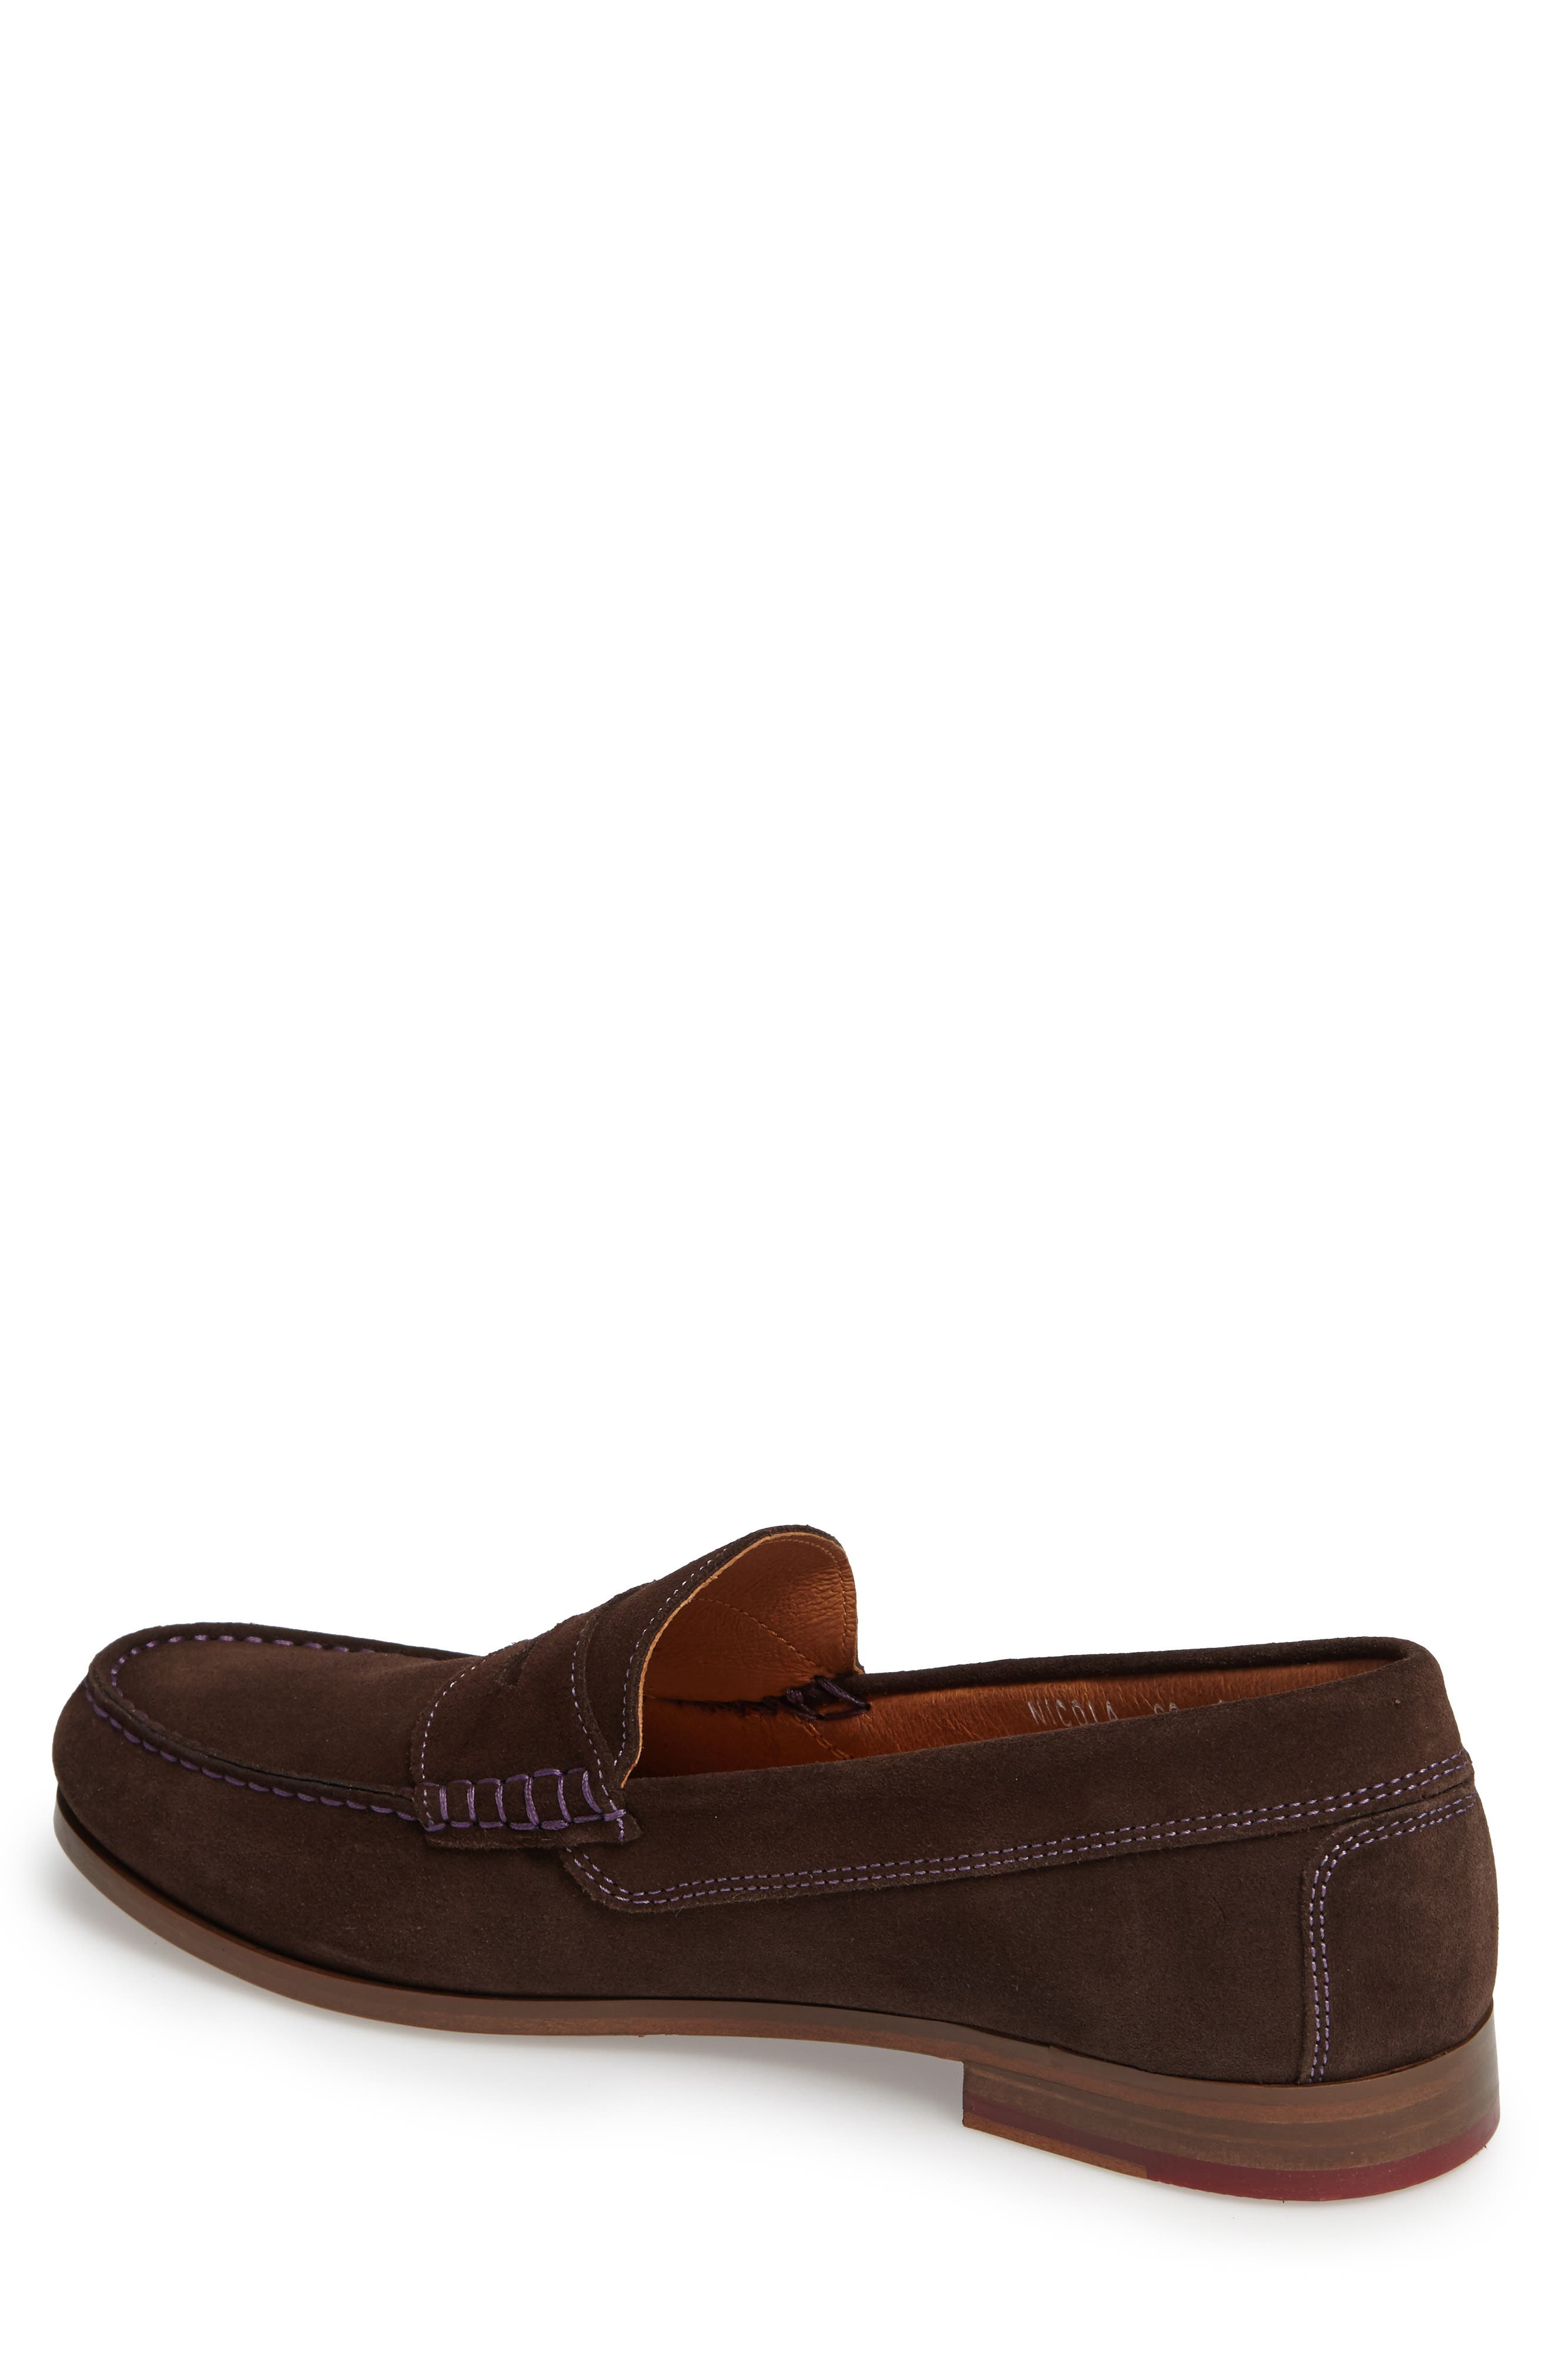 Nicola Penny Loafer,                             Alternate thumbnail 15, color,